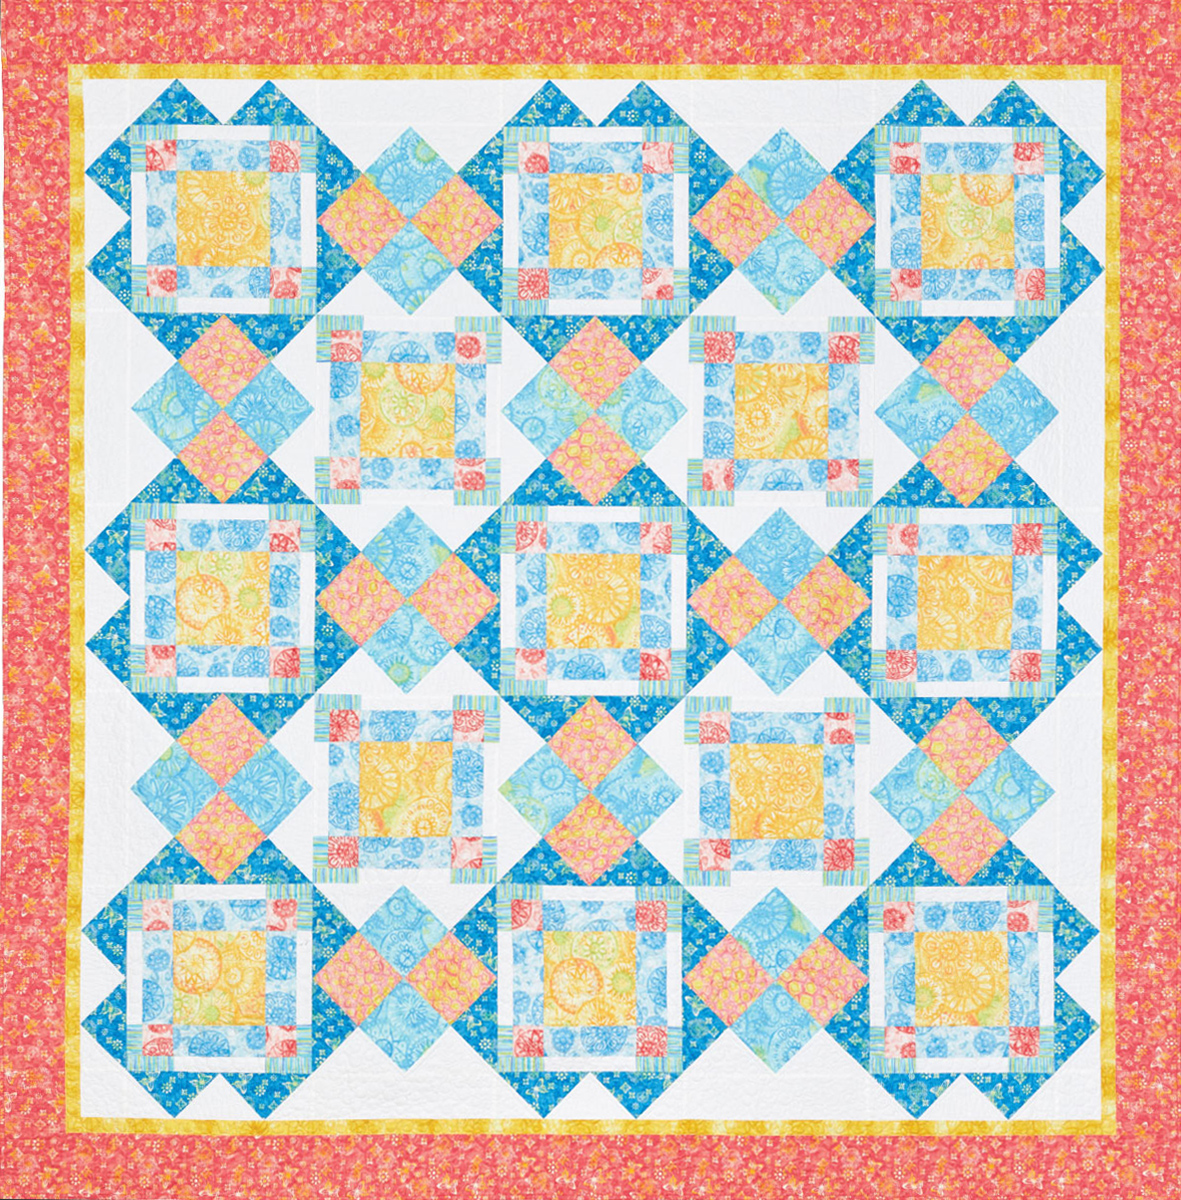 Nancy S Quilting Classroom Designing Quilt Blocks For 2